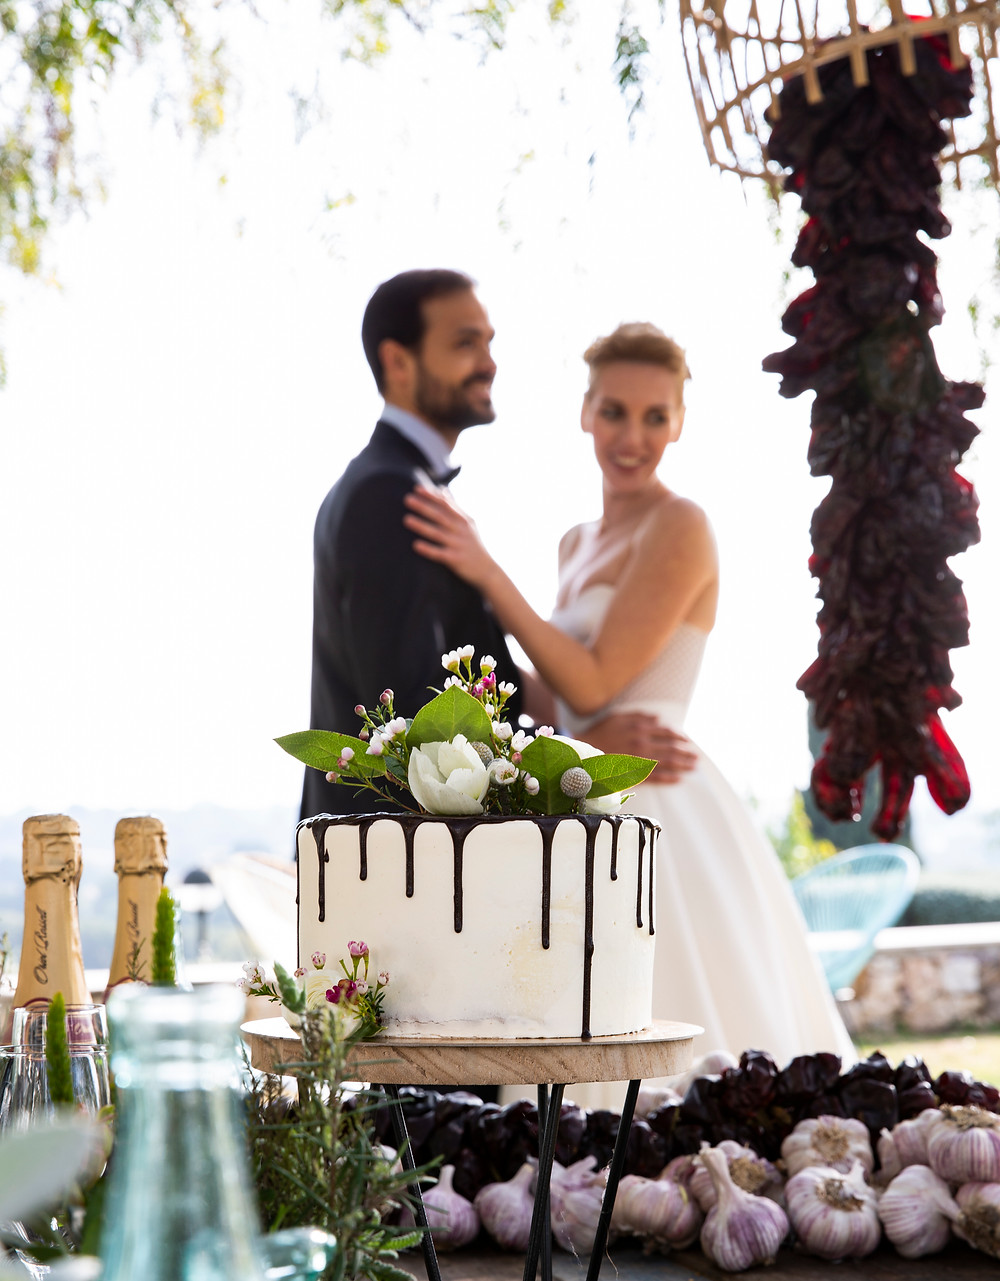 sitges-weddings-turisme